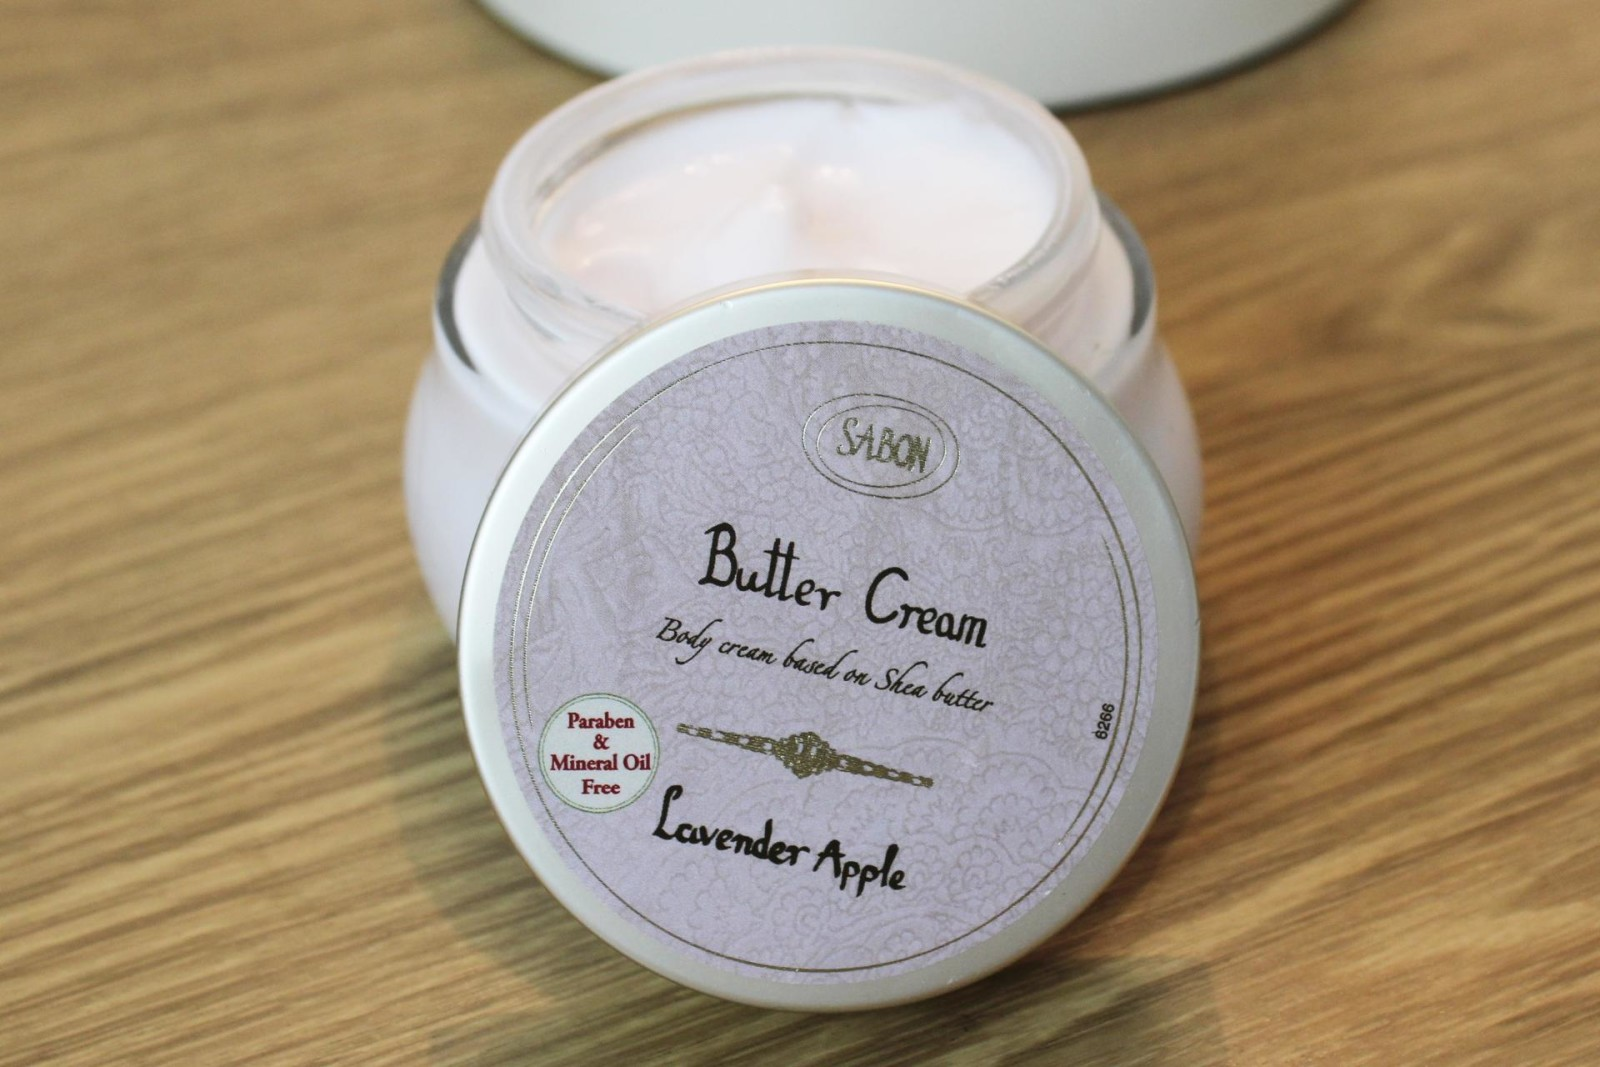 Sabon body butter Lavender apple